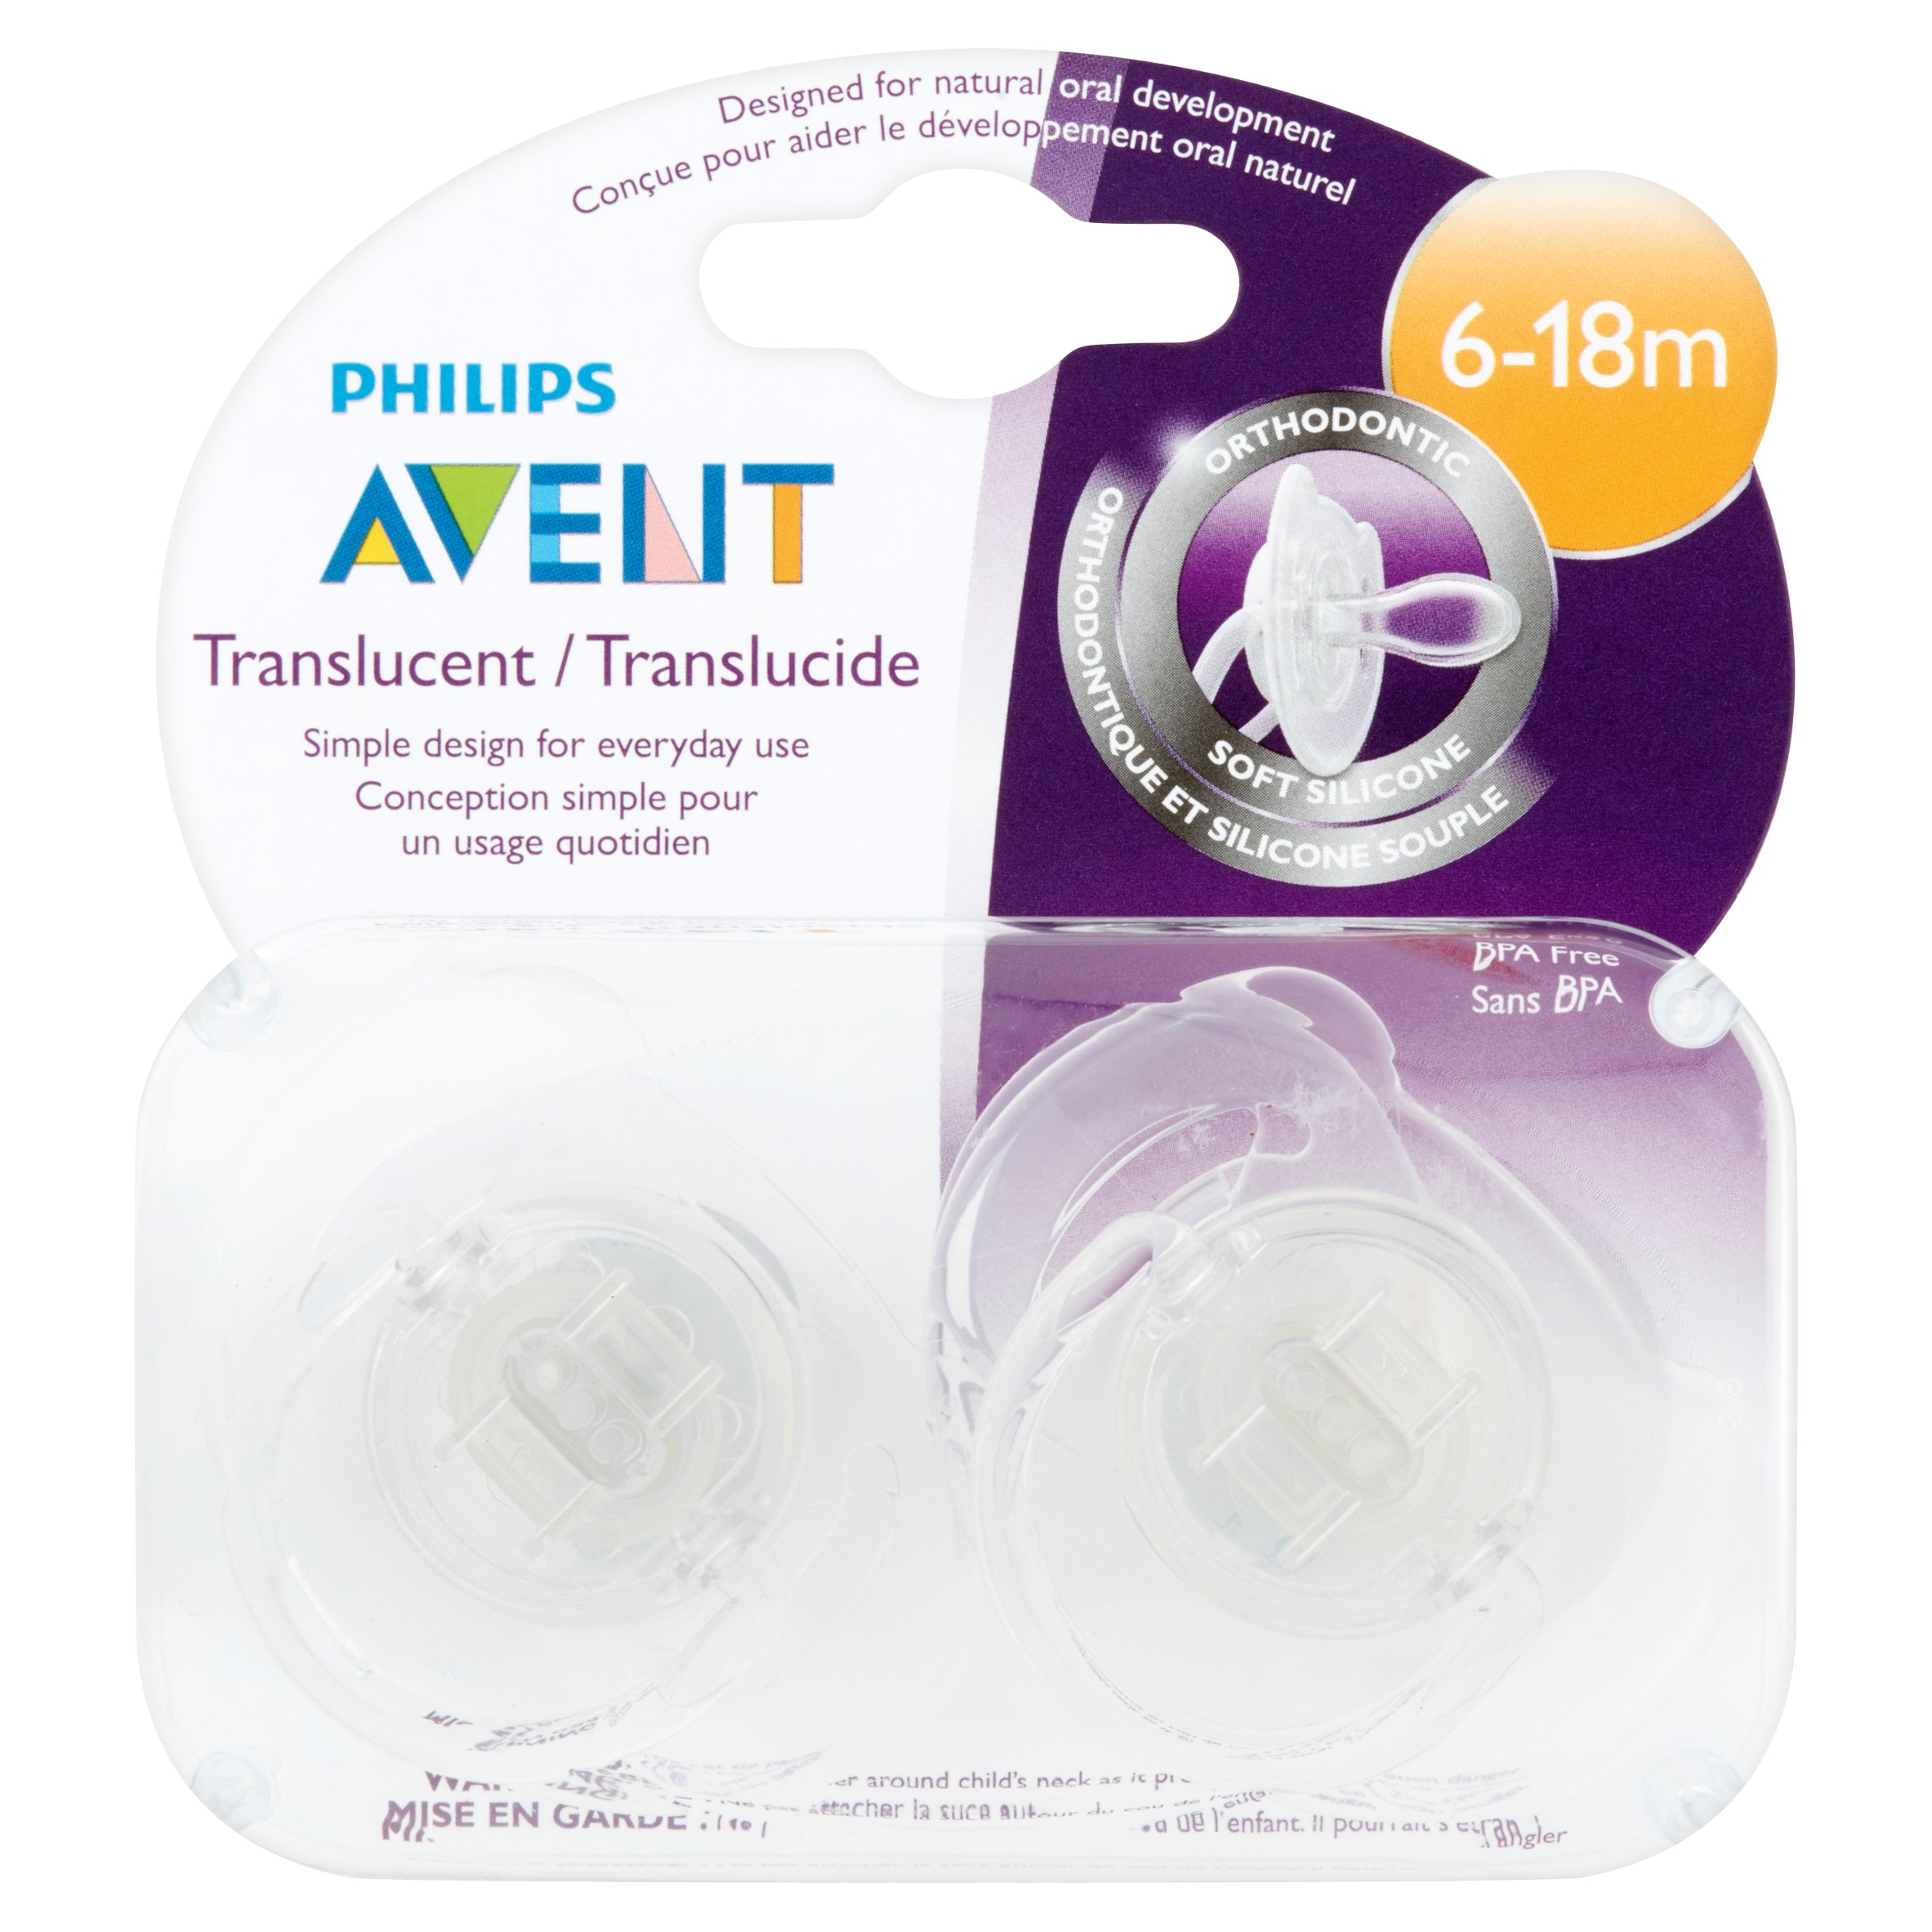 Philips Avent Translucent Orthodontic 6-18m